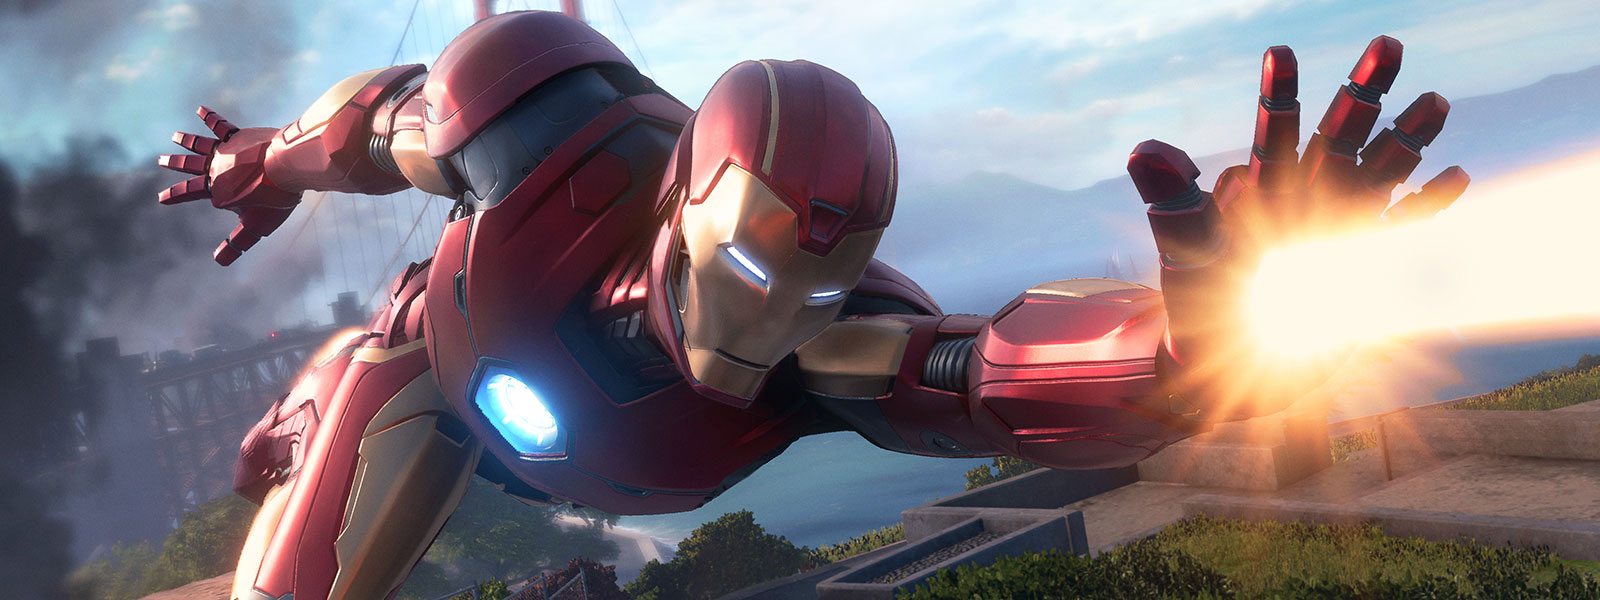 Iron Man flying and shooting a laser from his hand